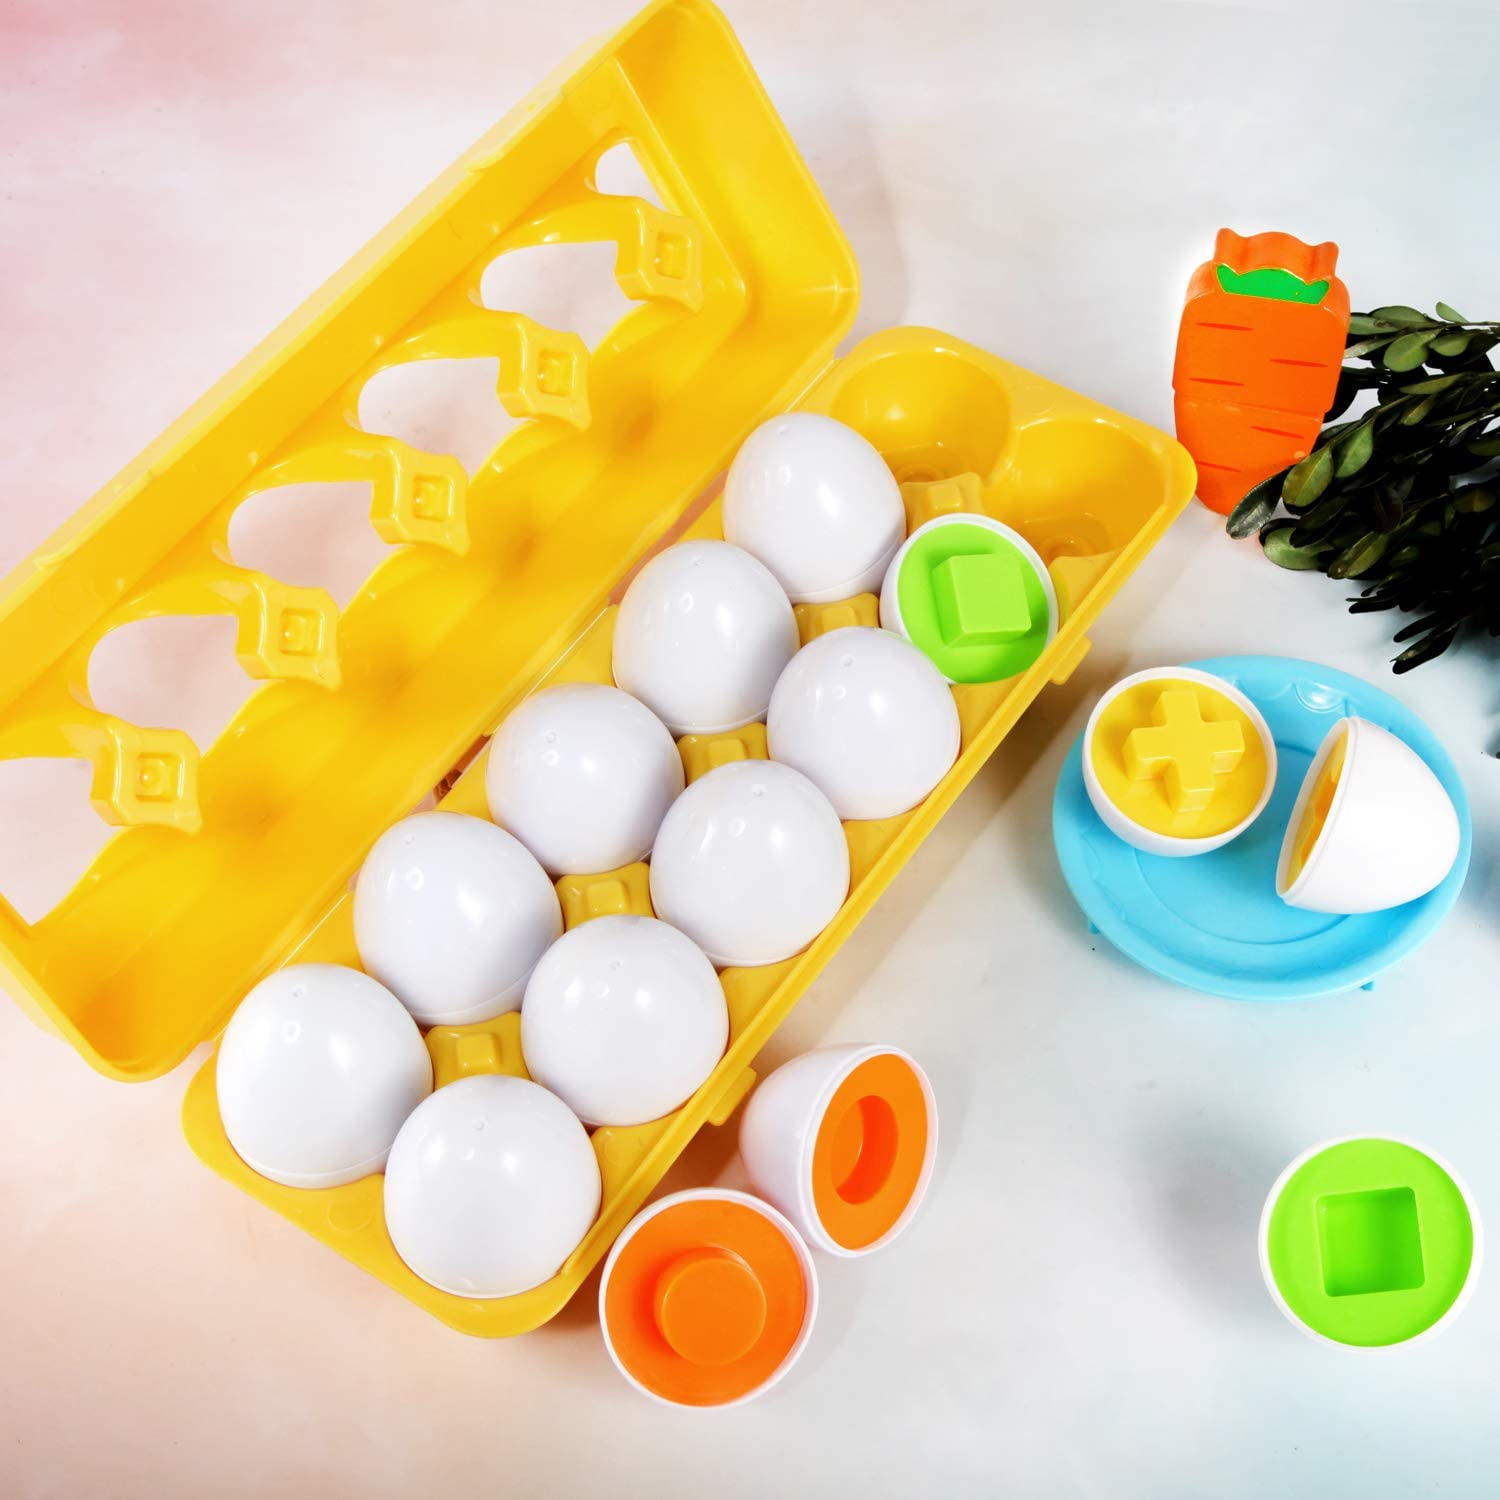 Easter Match Eggs Shape TomatoFish Color Shape Matching Egg Set Sorting Puzzle for Toddlers Boys Girls Preschool STEM Toys Educational Color /& Shape//Number Recognition Skills Learning Toys